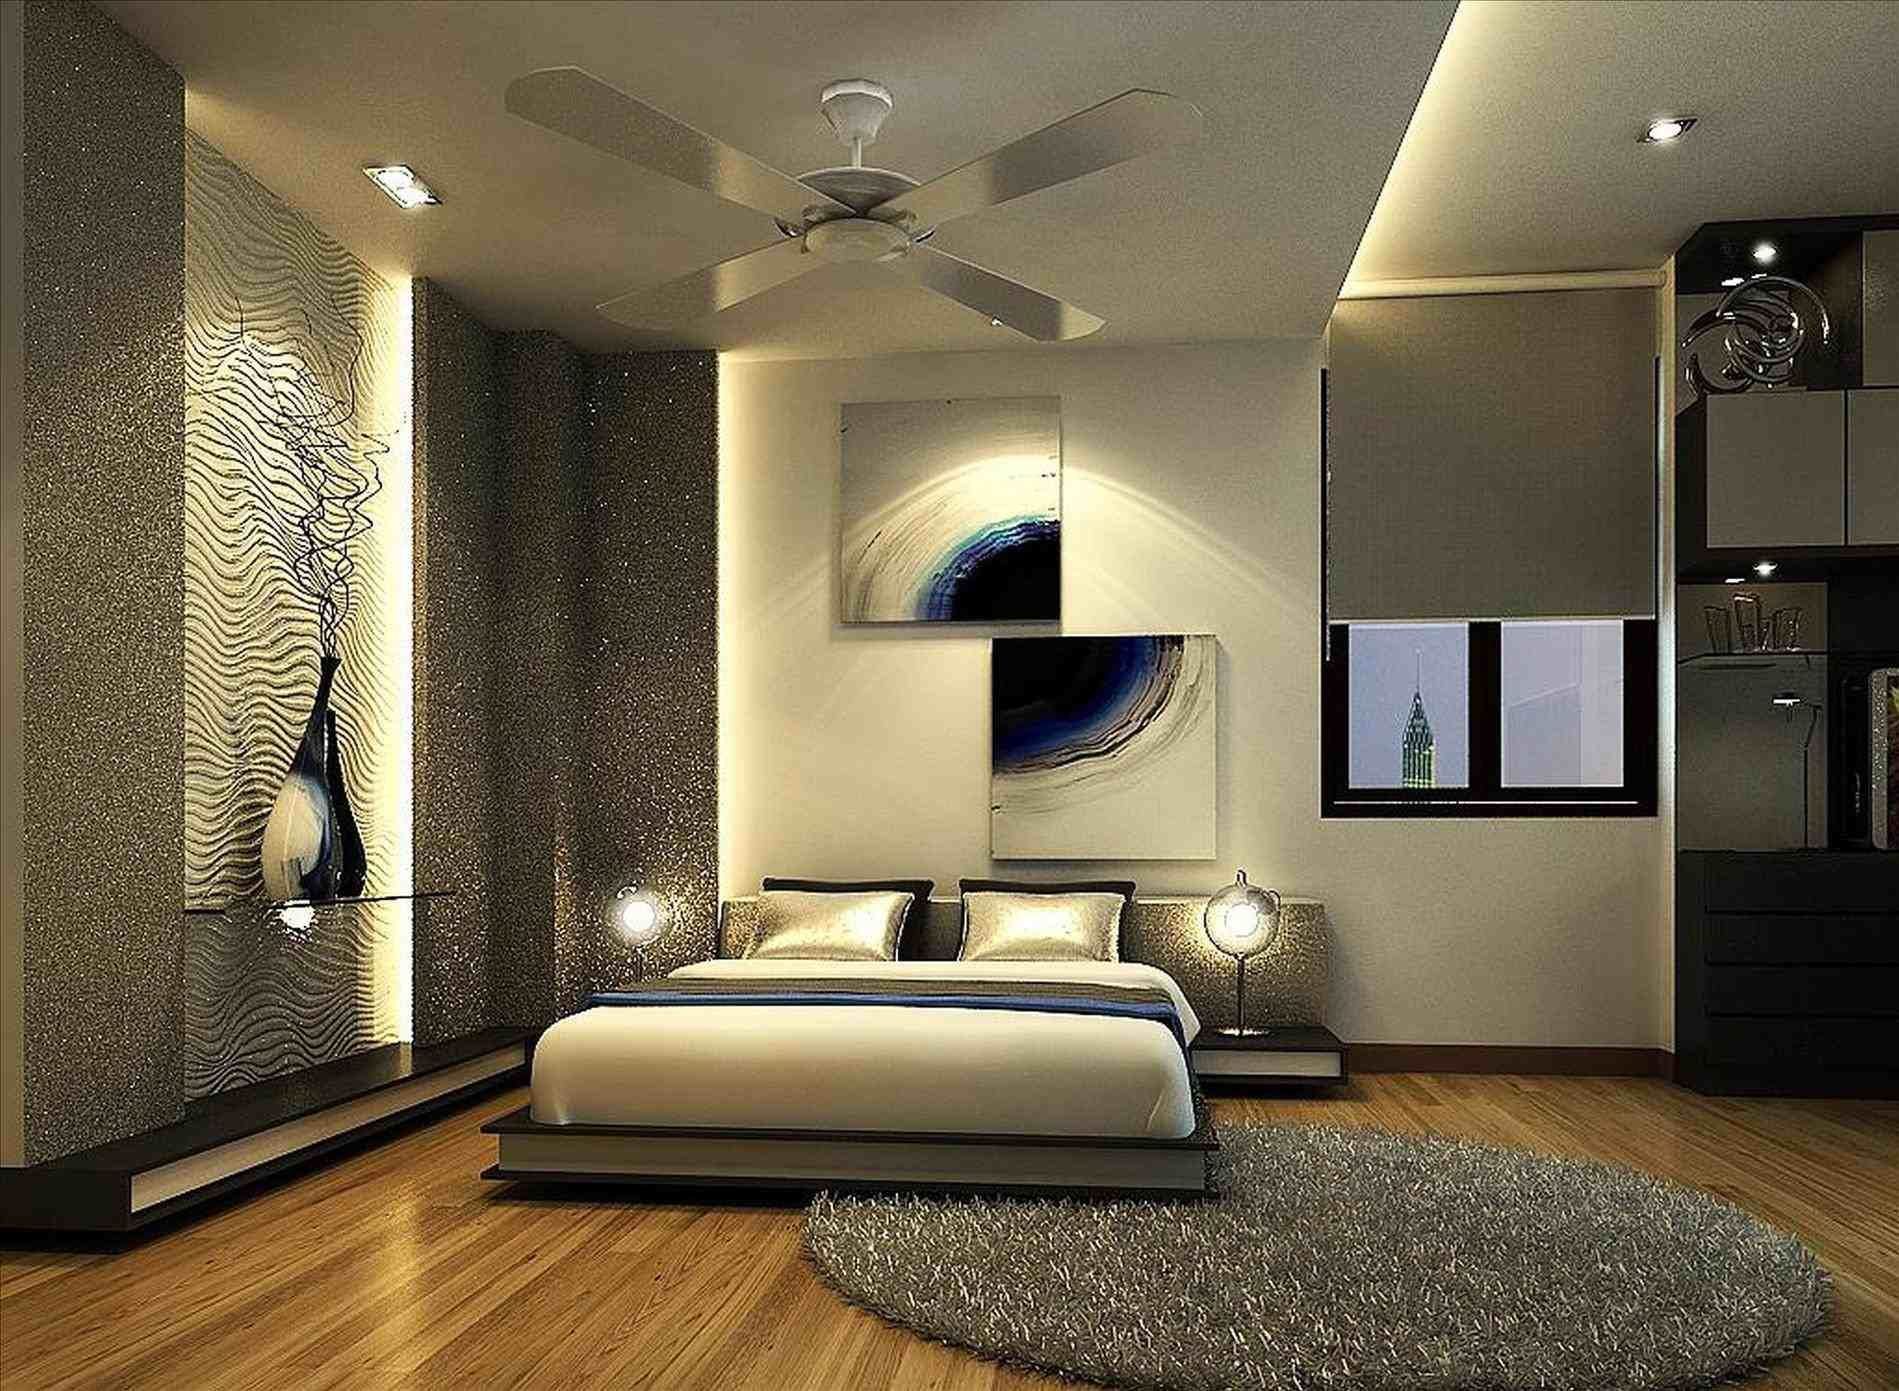 Ceiling Bedroom Design